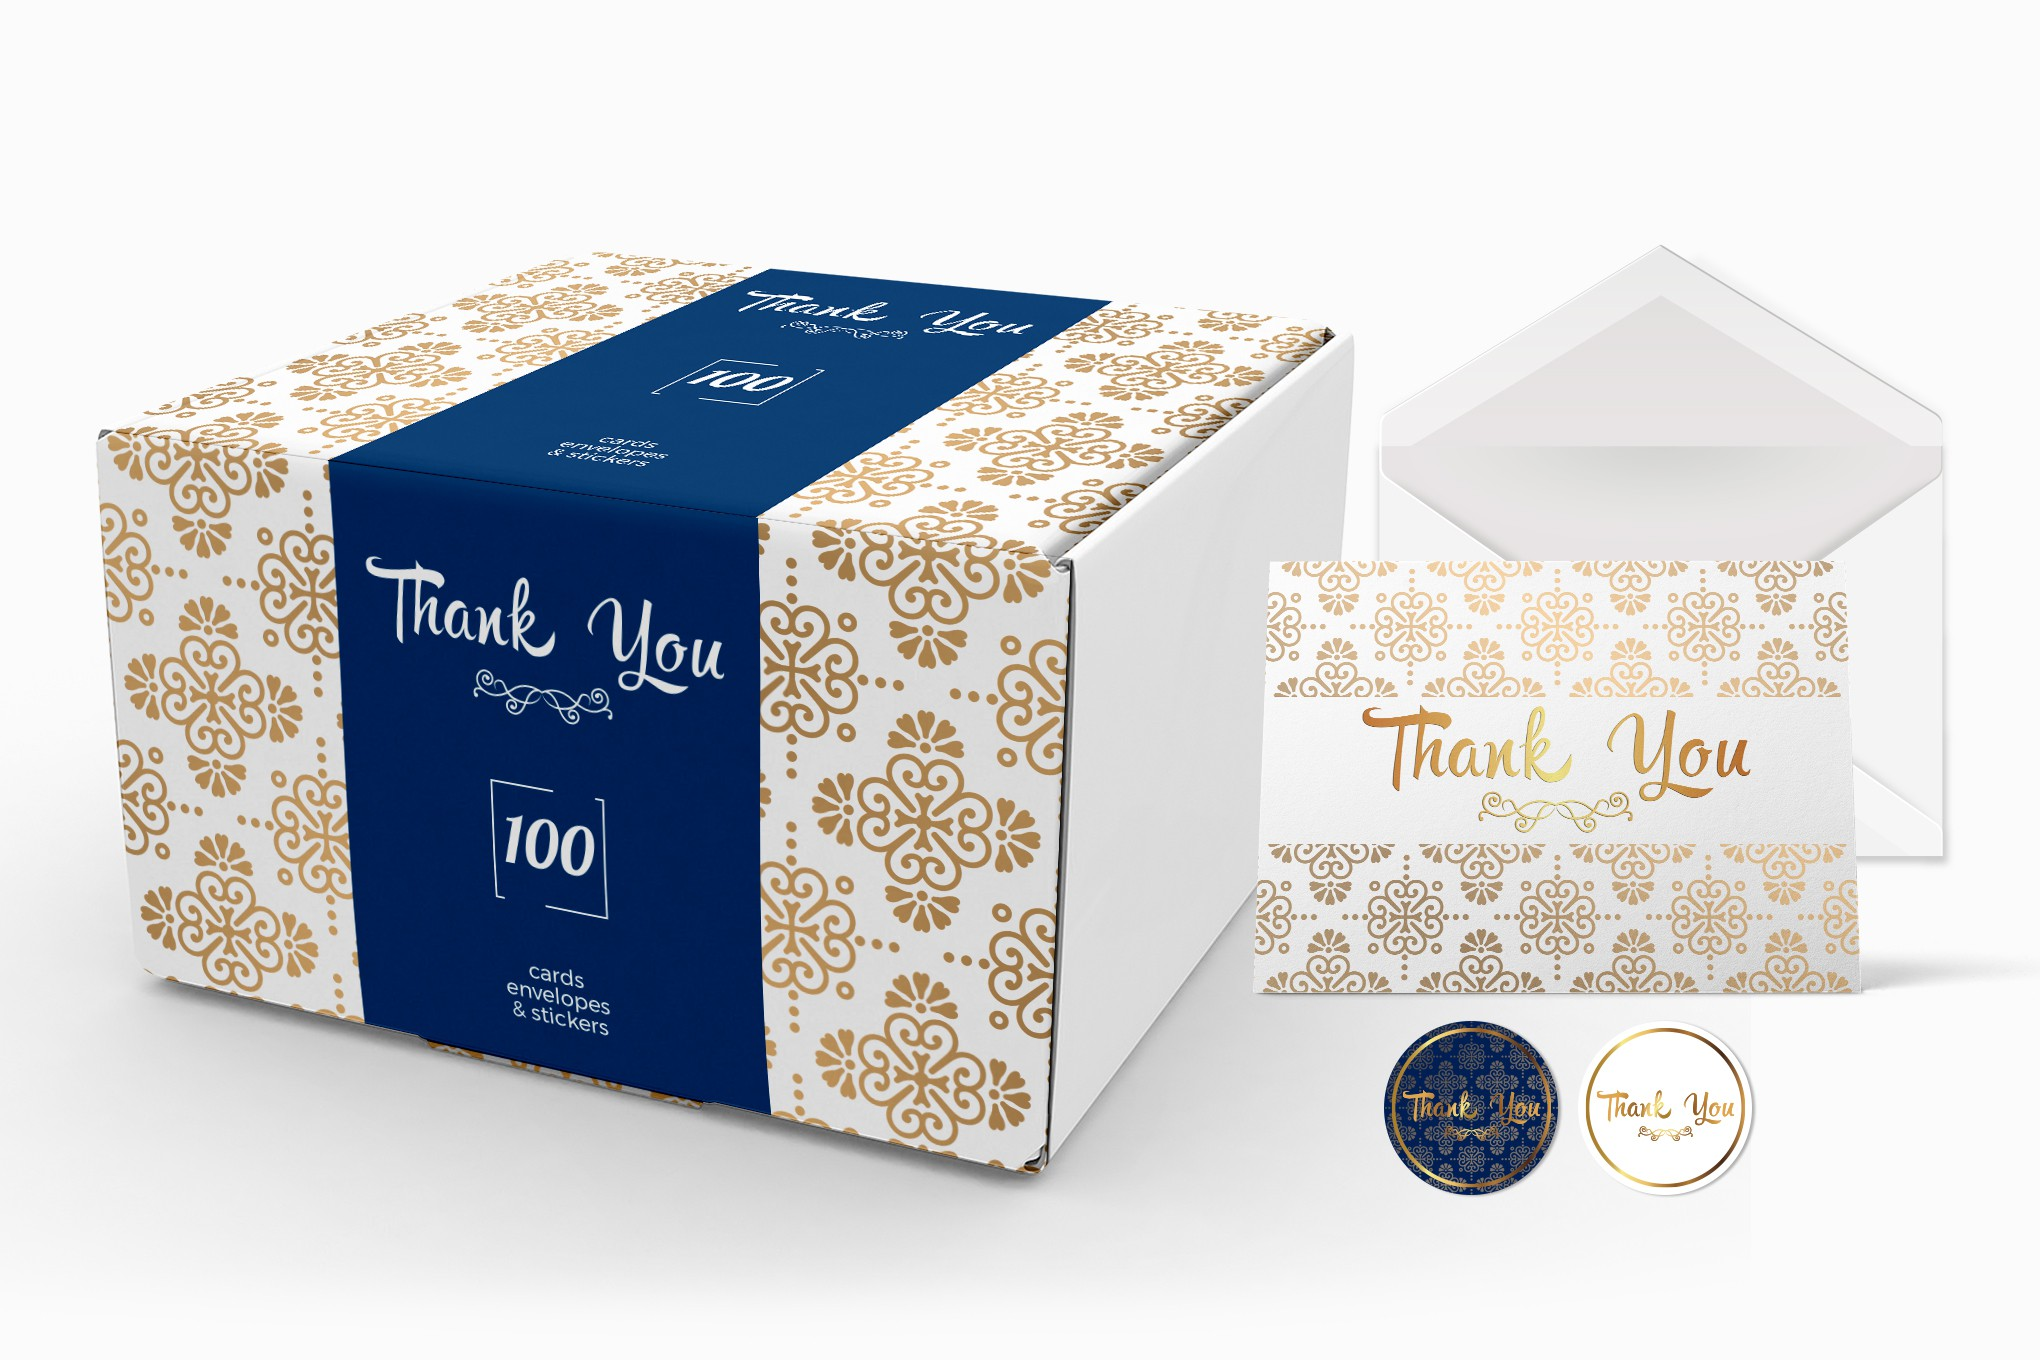 Thank You Cards in a beautiful luxury box